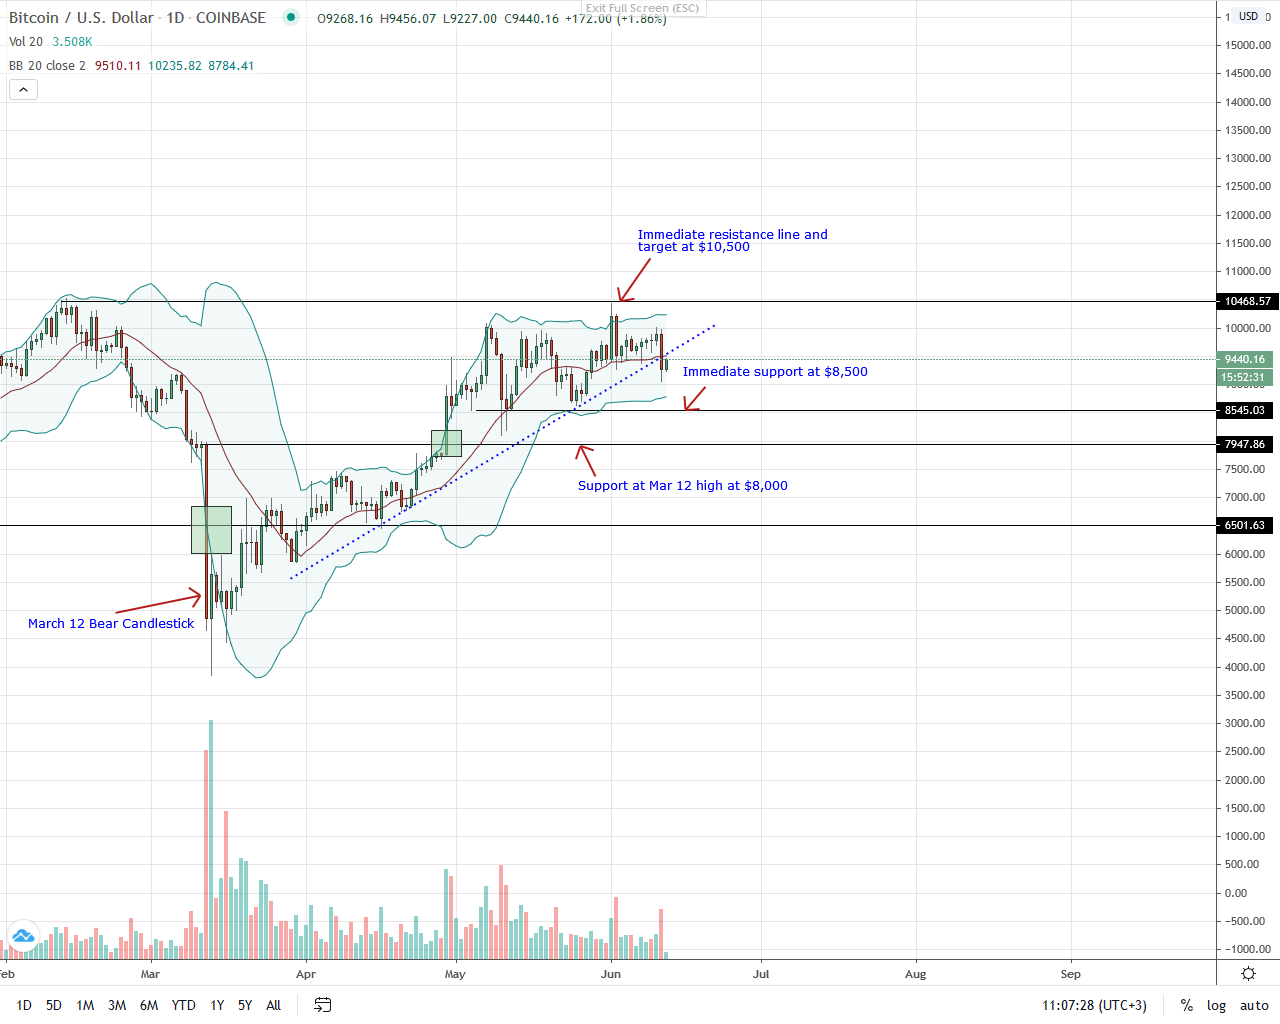 Bitcoin Daily Chart for June 12, 2020